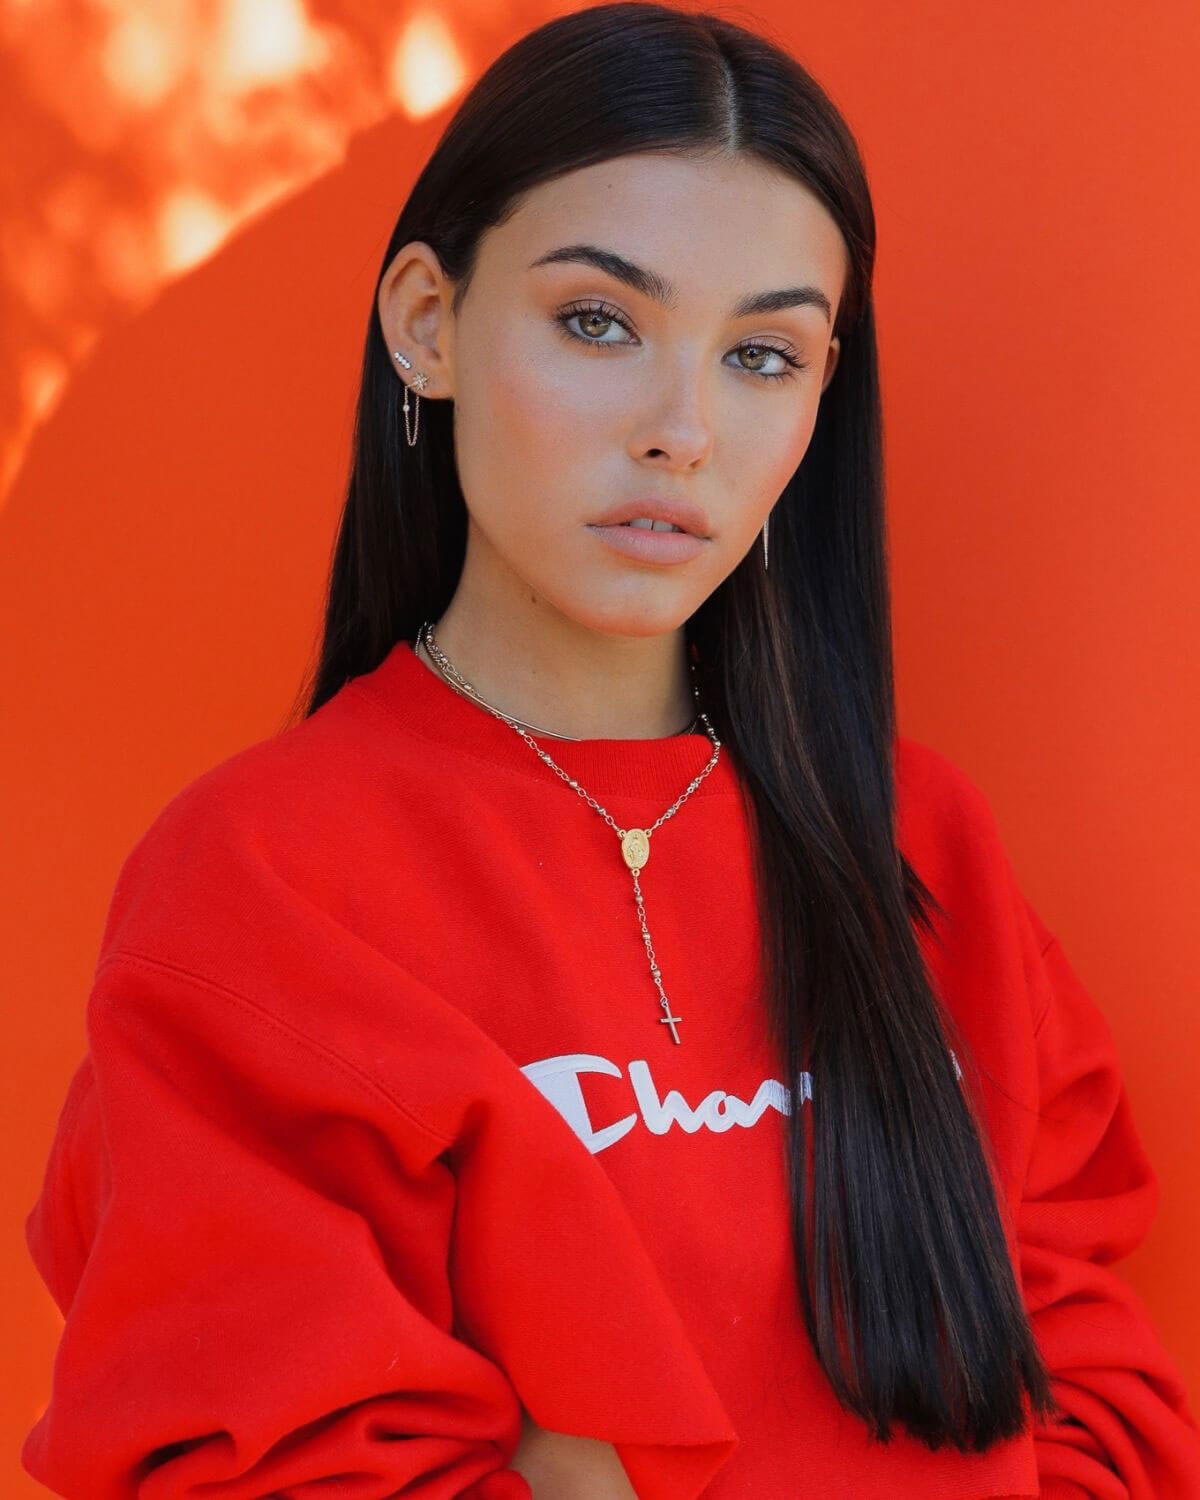 Madison Beer Poses for Rawpages.com, September 2017